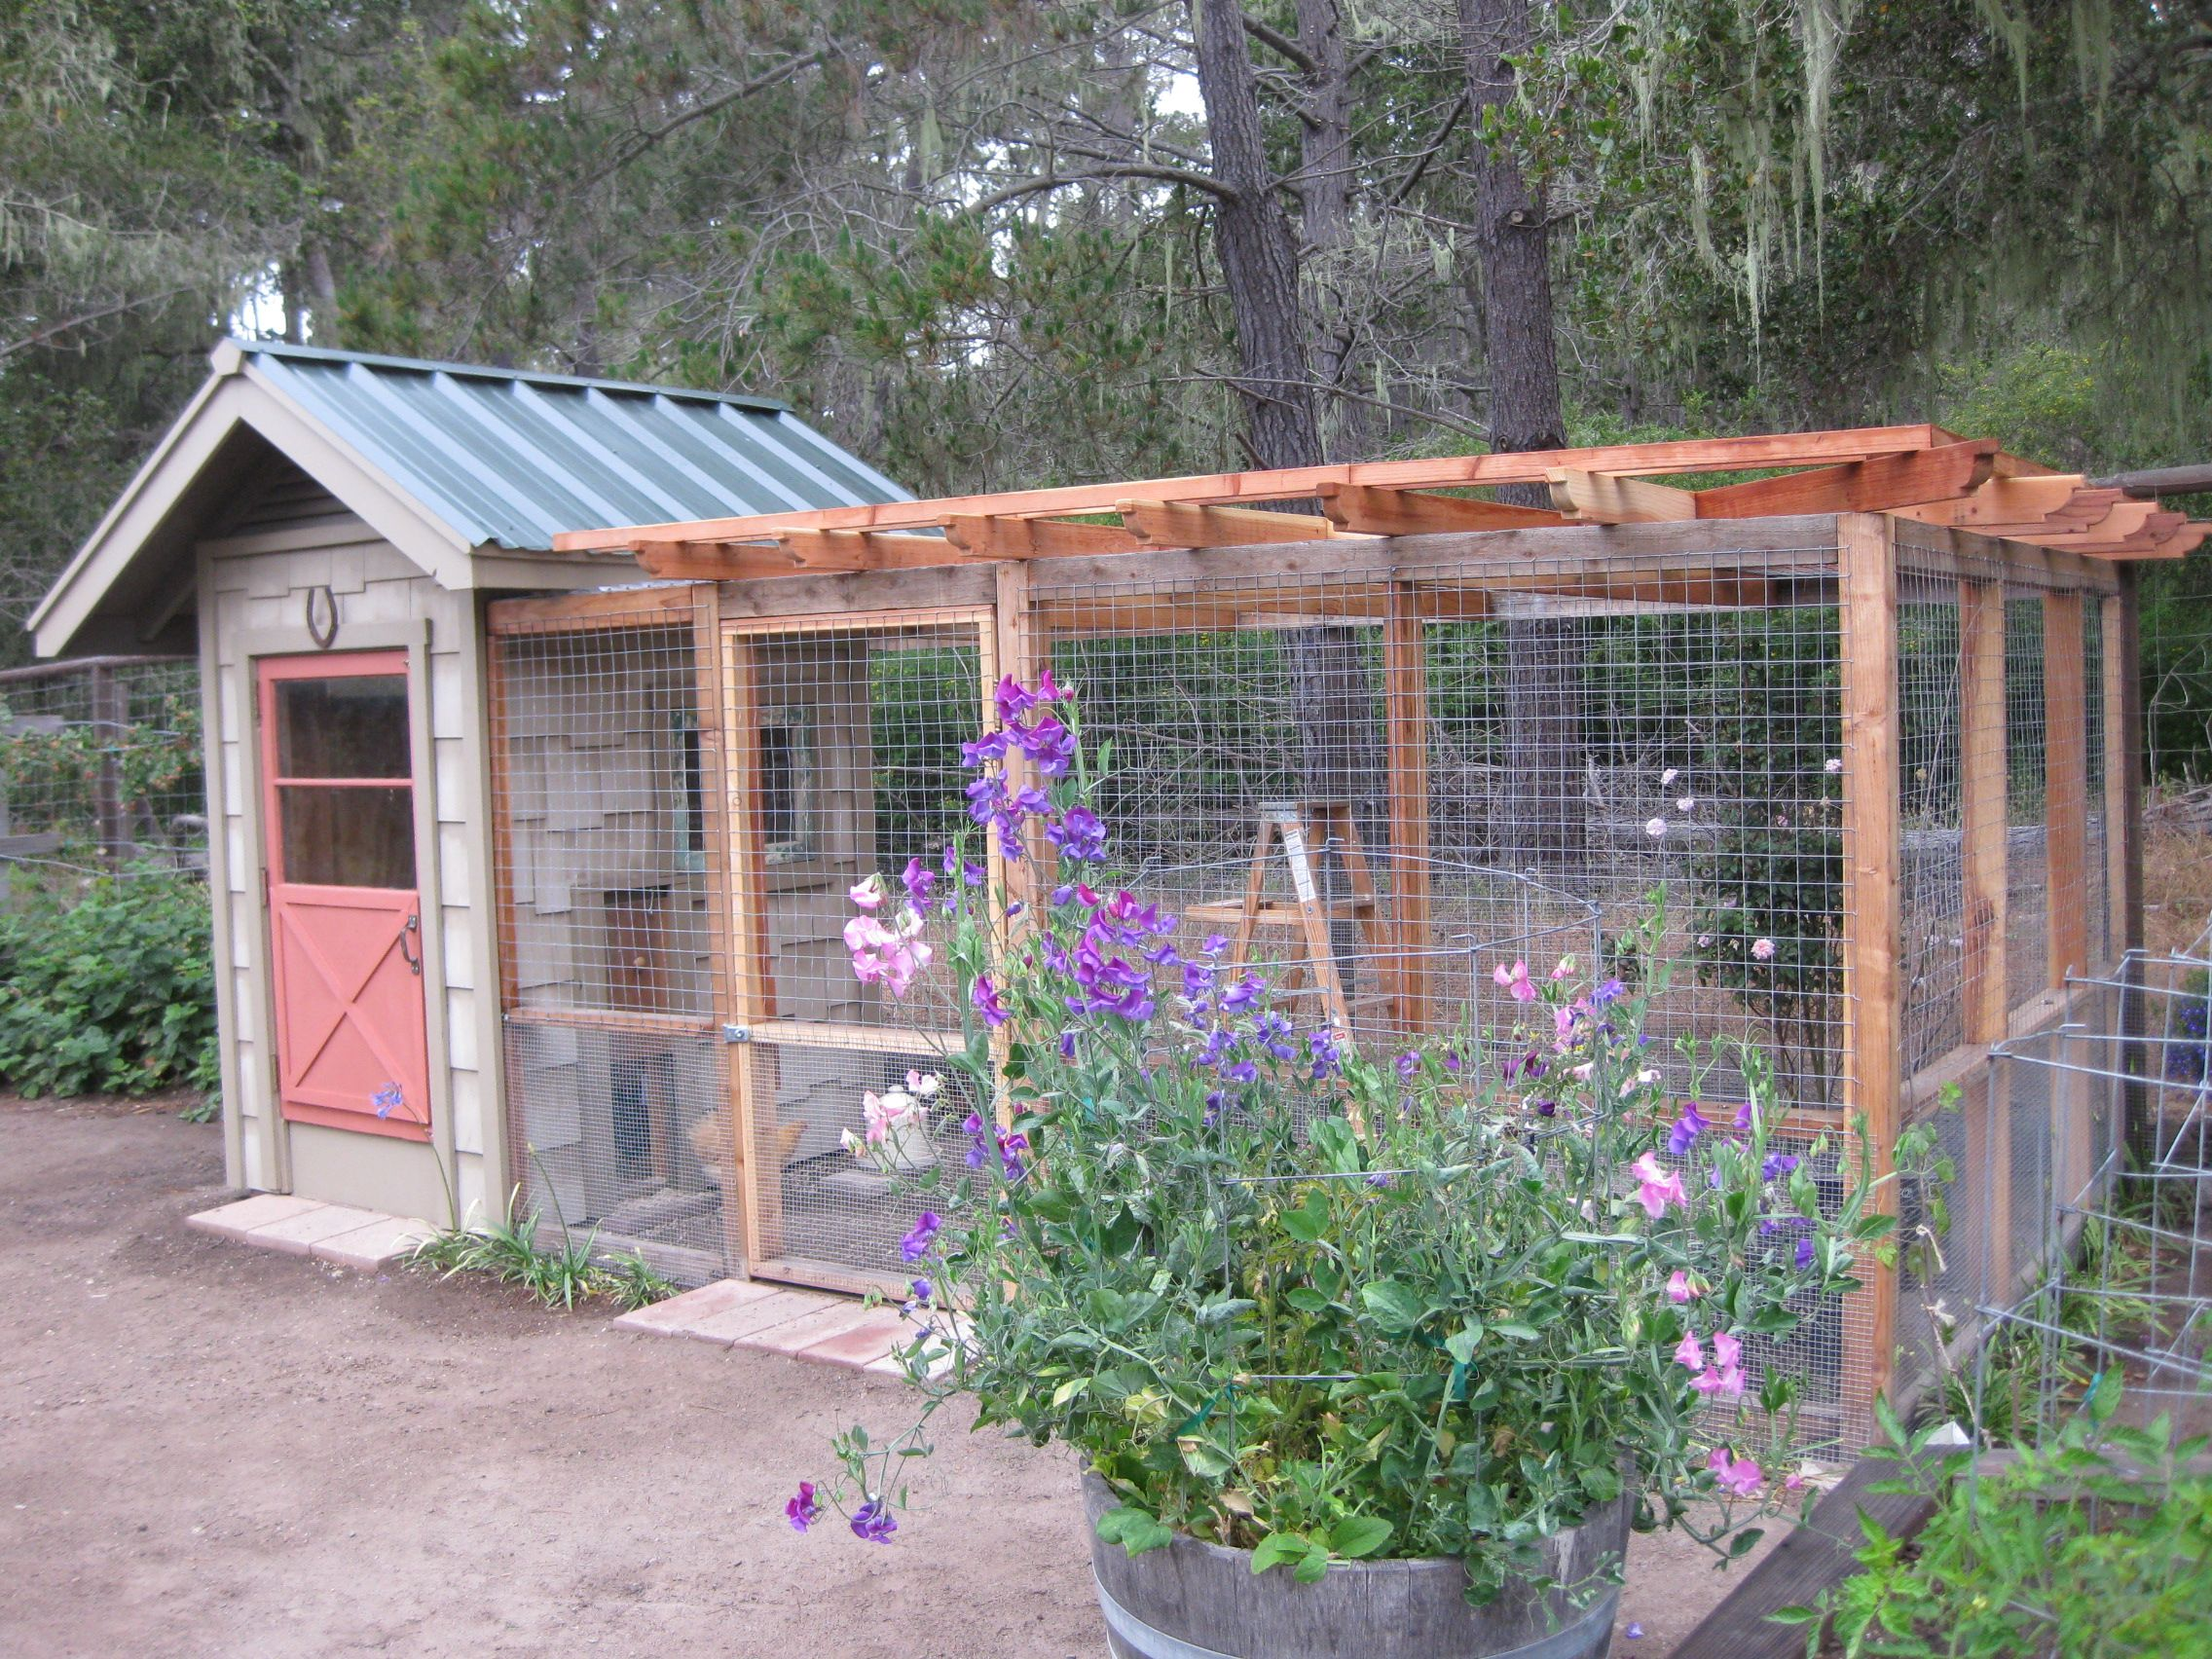 Awesome Purple Daisy Chicken Coop With Run I Wish I Had The - Chicken co op with flowers